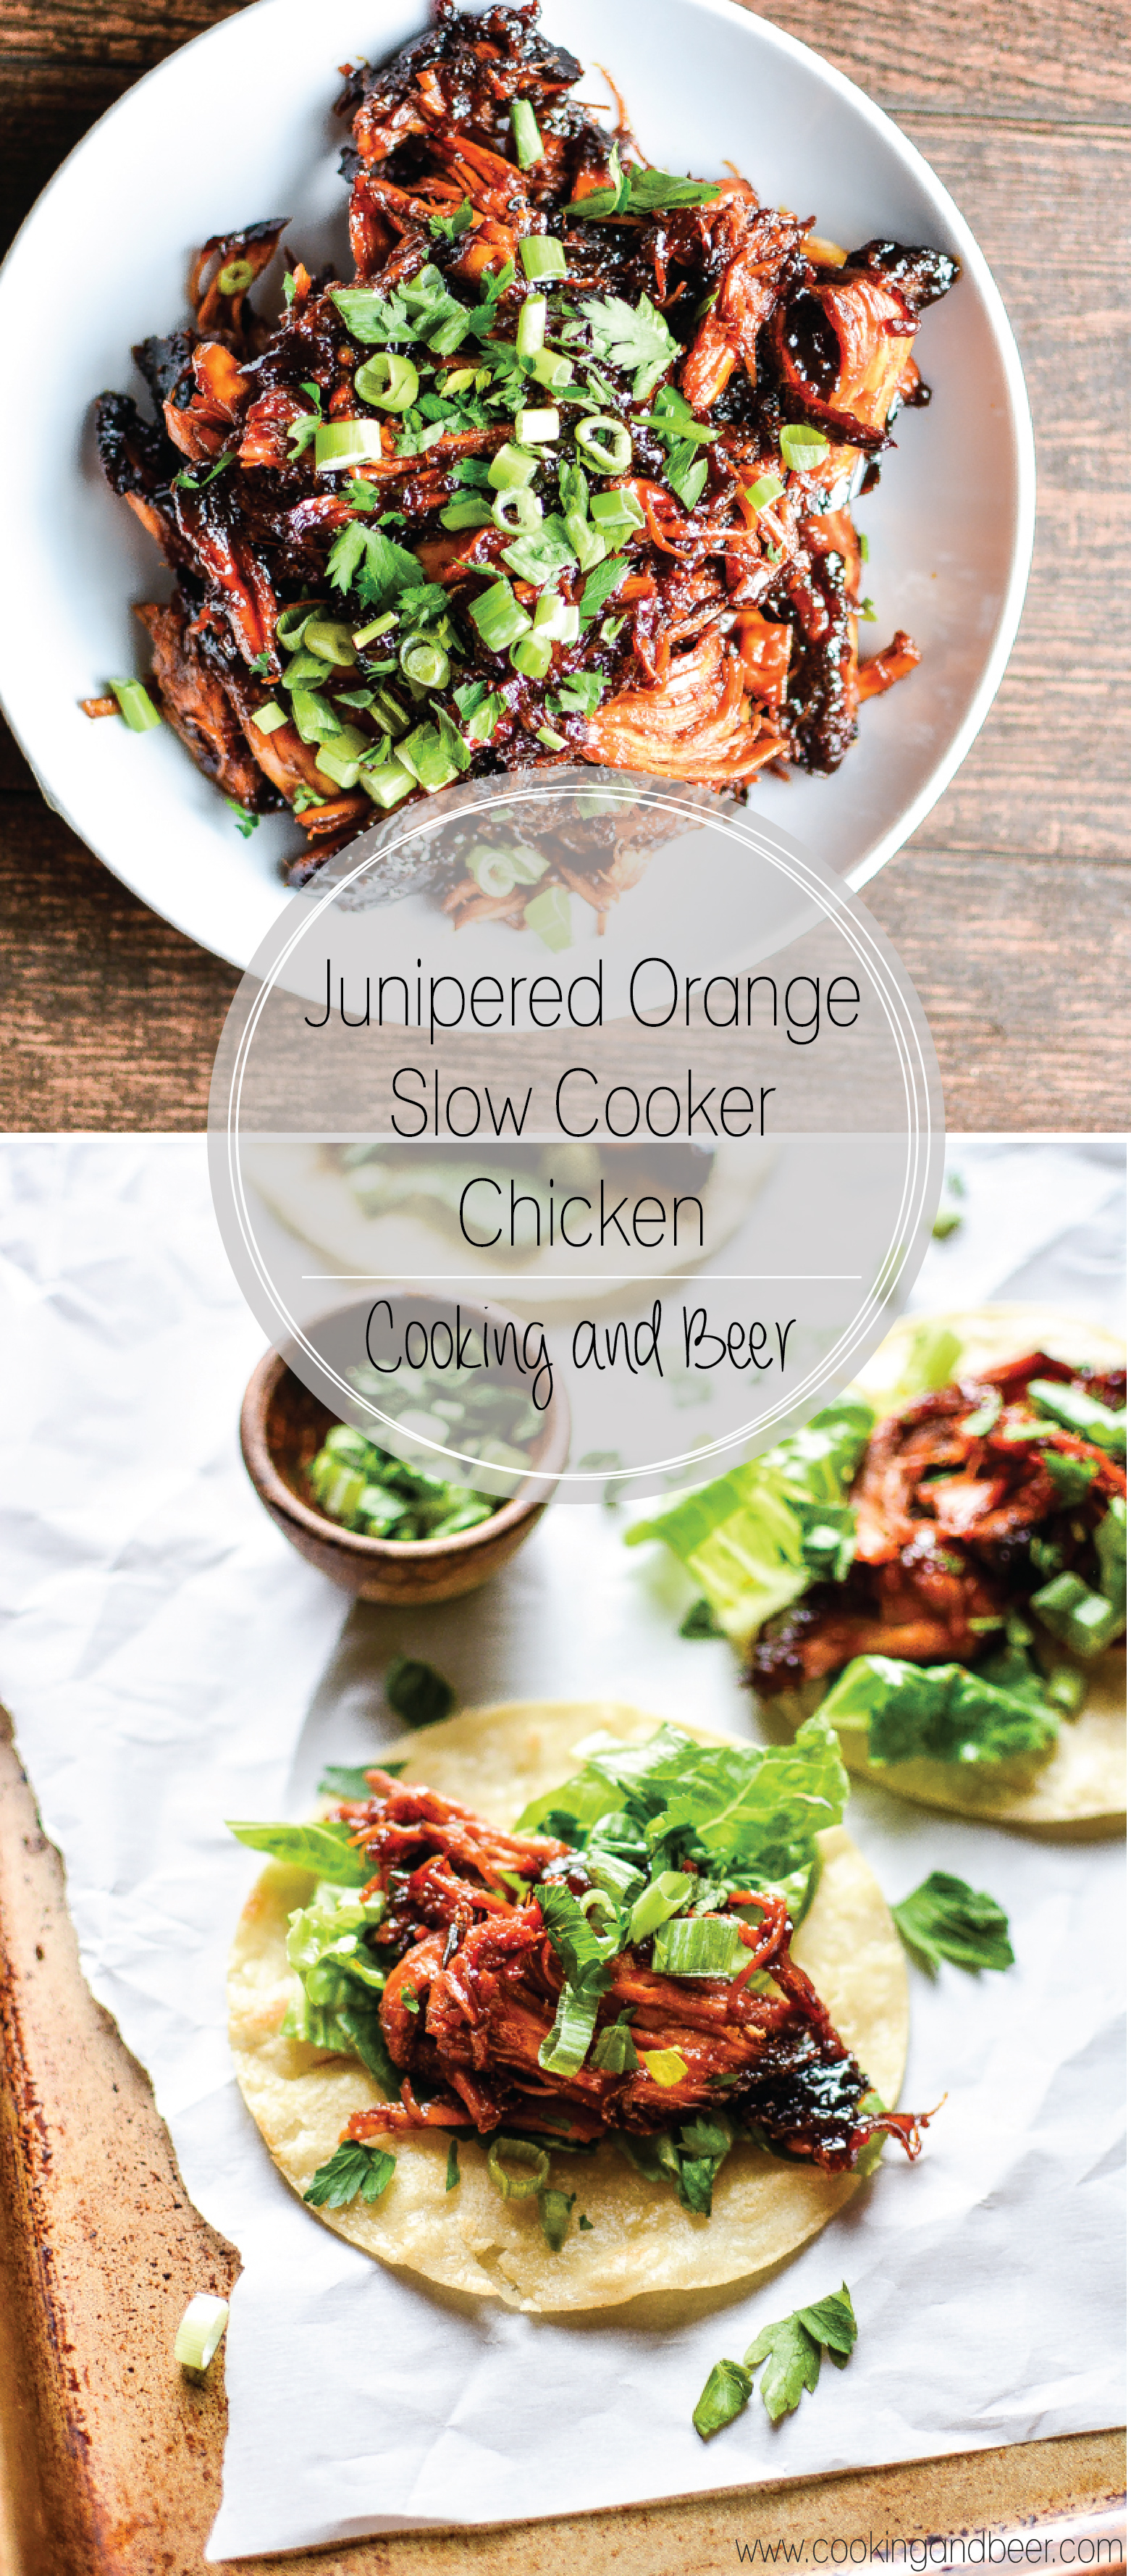 Junipered Orange Slow Cooker Chicken: a weeknight dinner recipe that's easy, delicious and packed full of flavor! | www.cookingandbeer.com